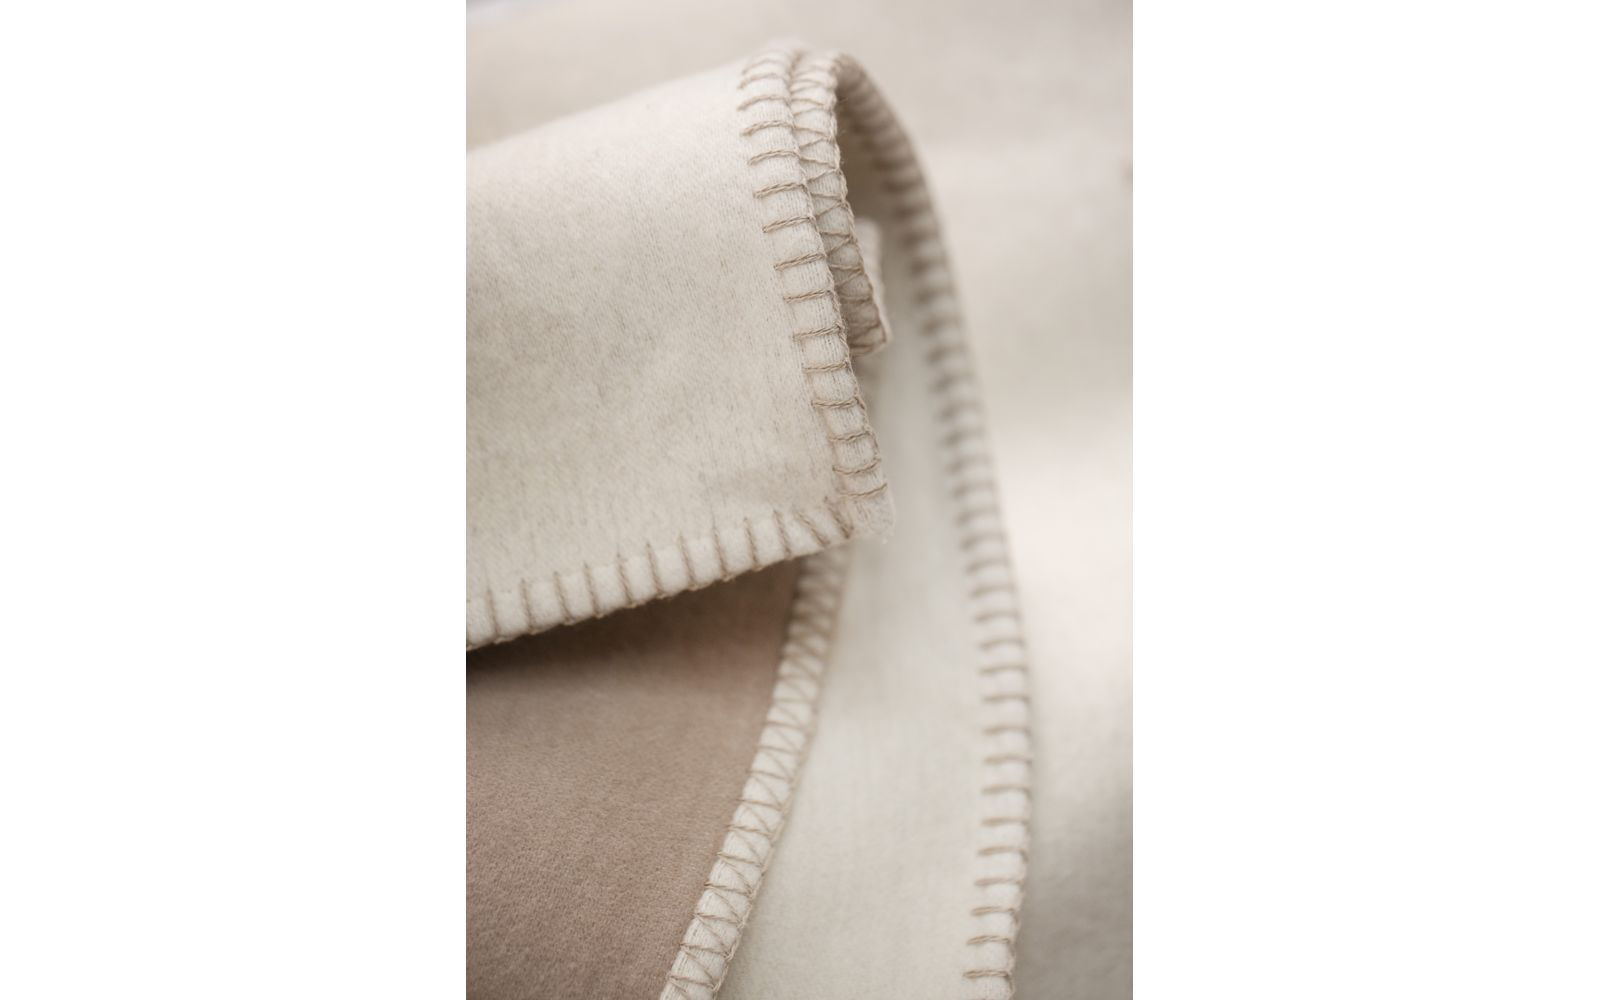 JADE cotton throw 100% org. cotton (GOTS), single umbel